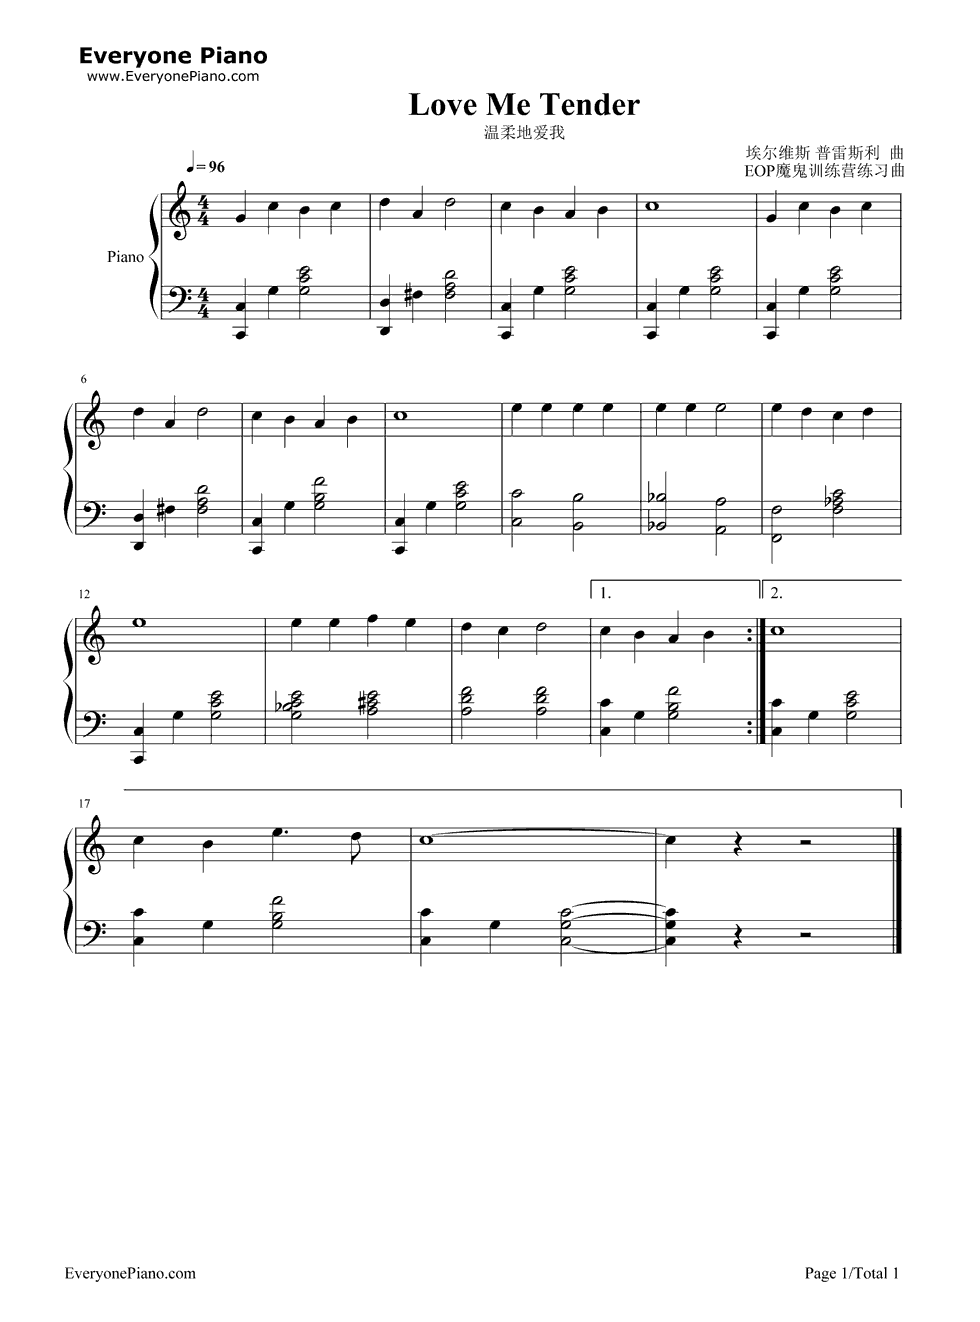 love me tender stave preview 1 free piano sheet music. Black Bedroom Furniture Sets. Home Design Ideas